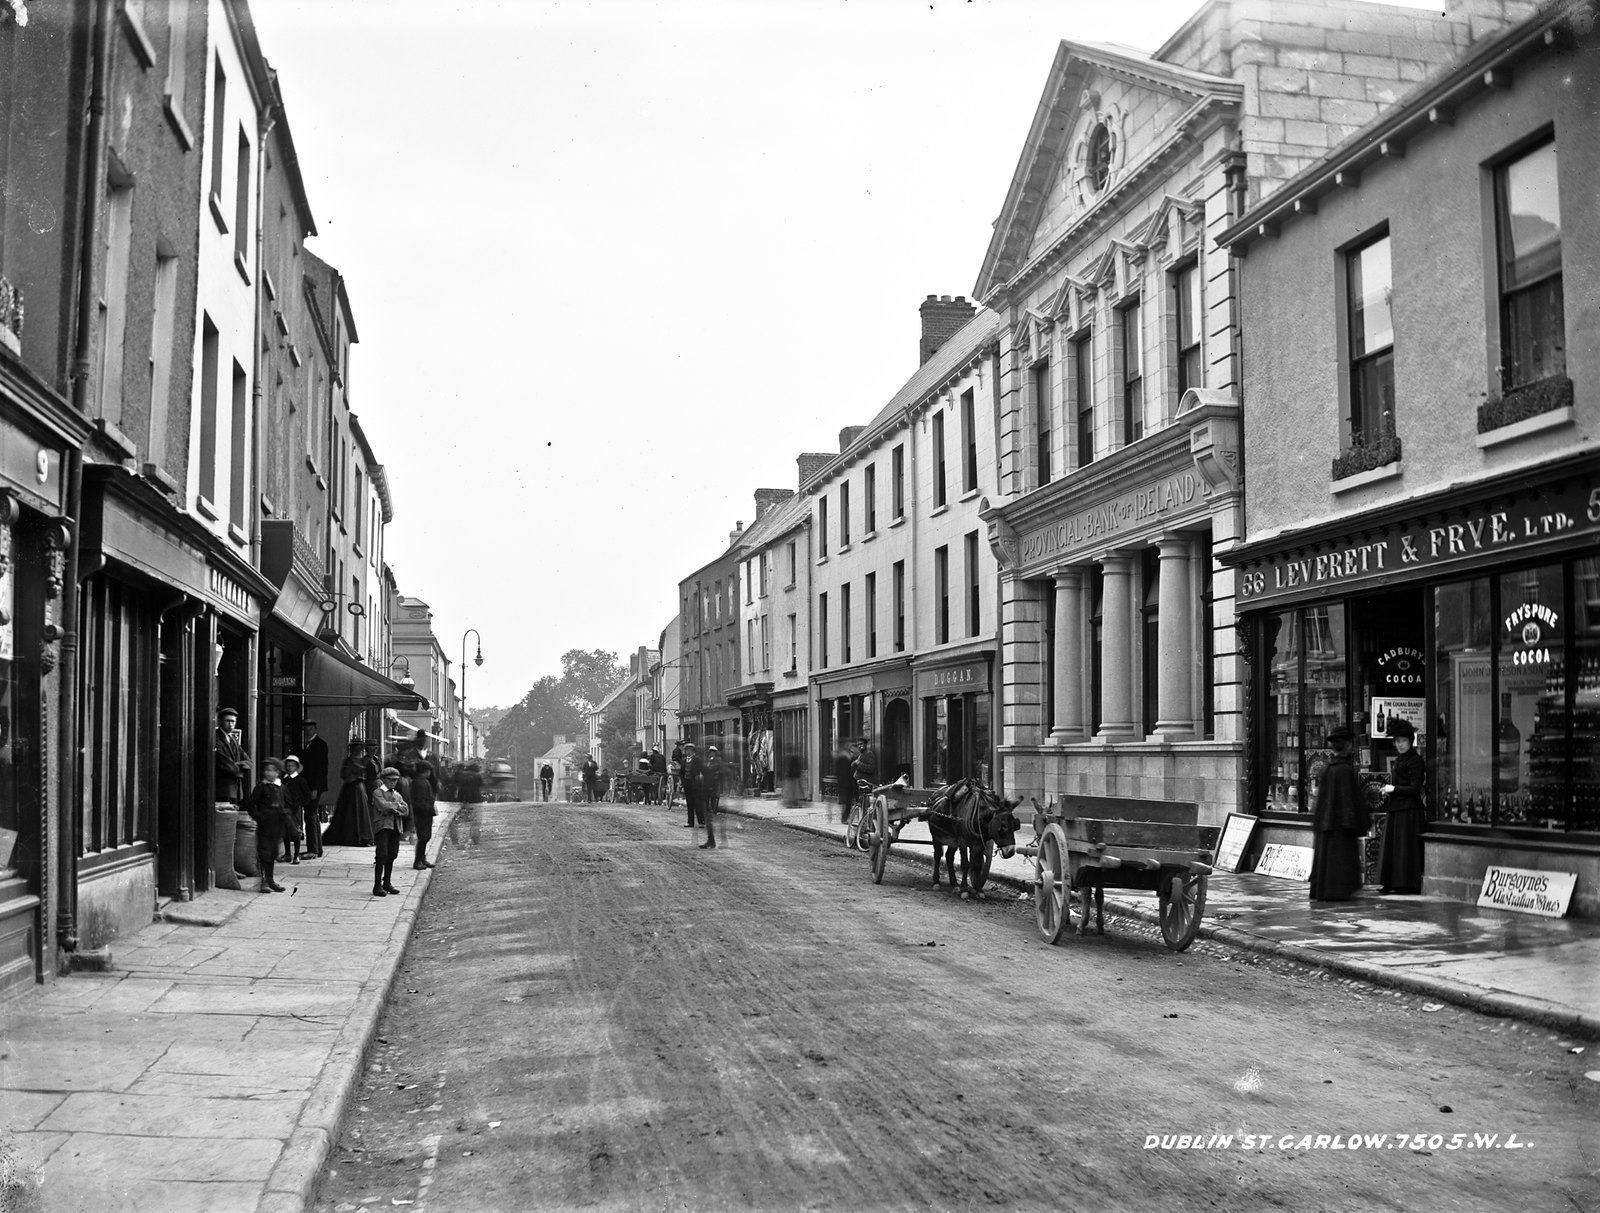 Dublin St. Co. Carlow | by National Library of Ireland on The Commons